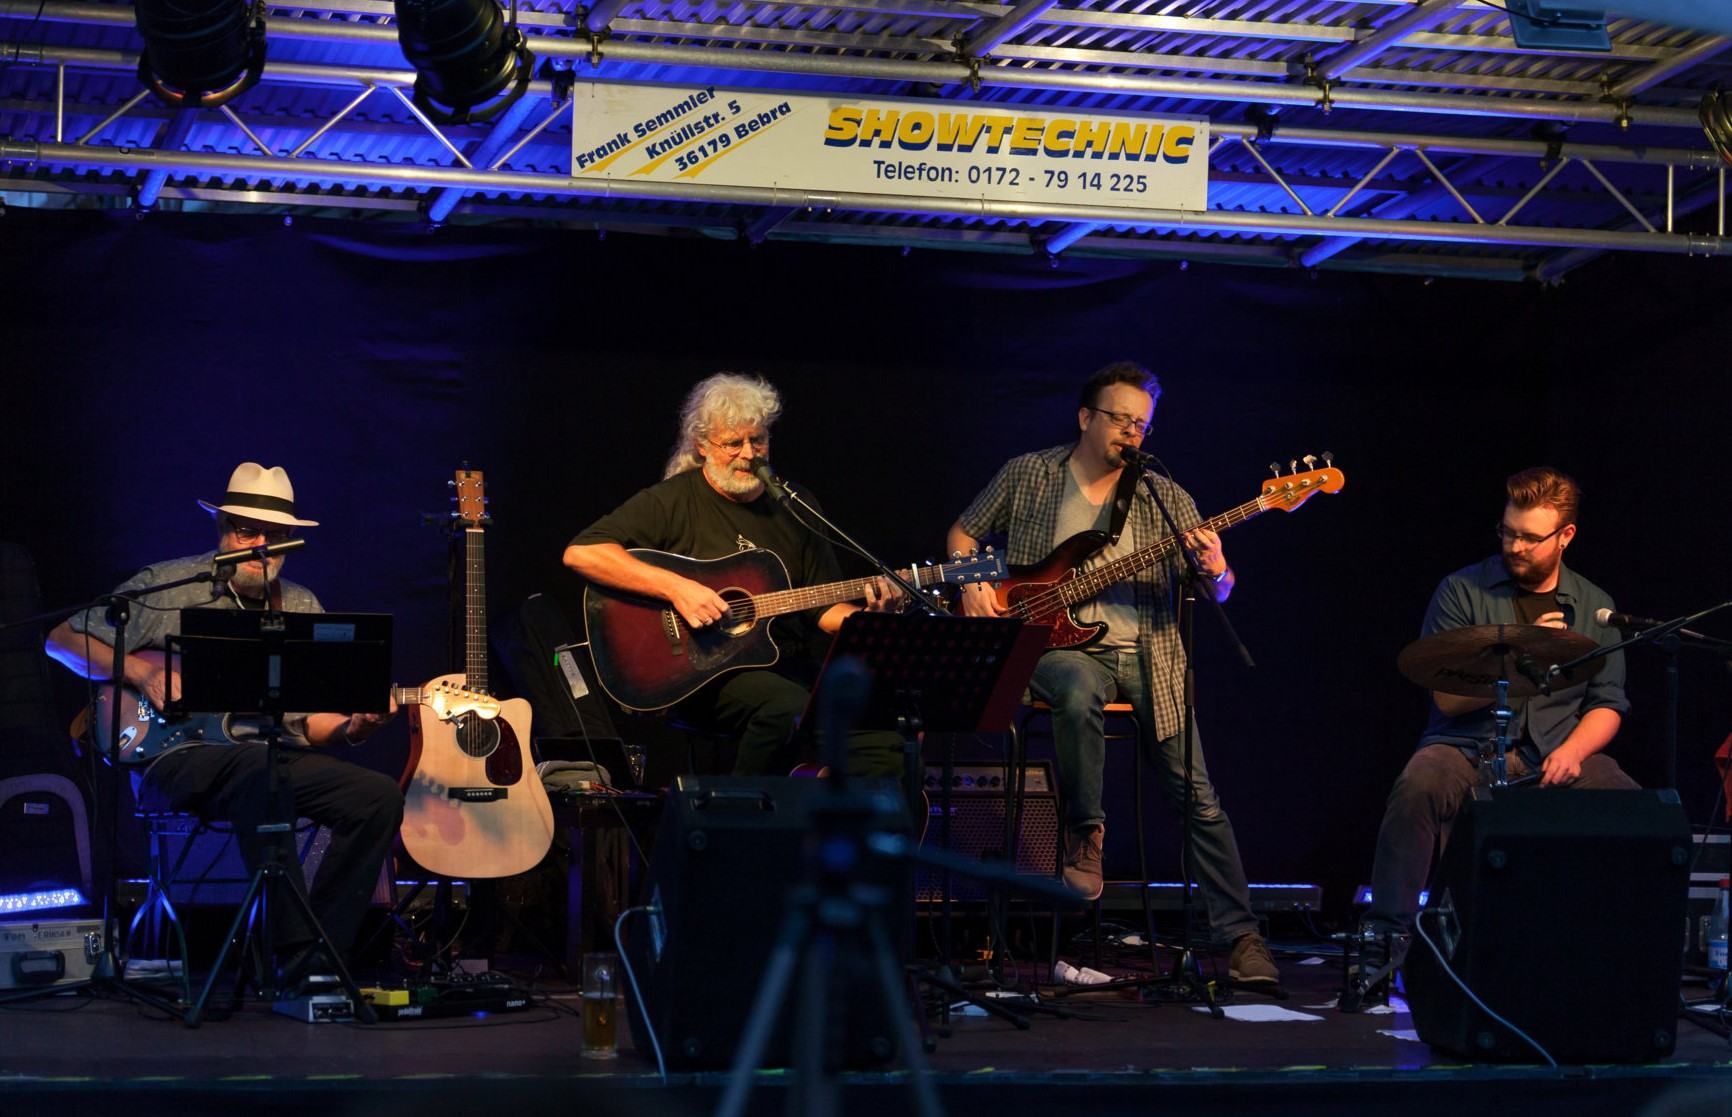 Shiregreen_Sternenfolk_Rotenburg_2017